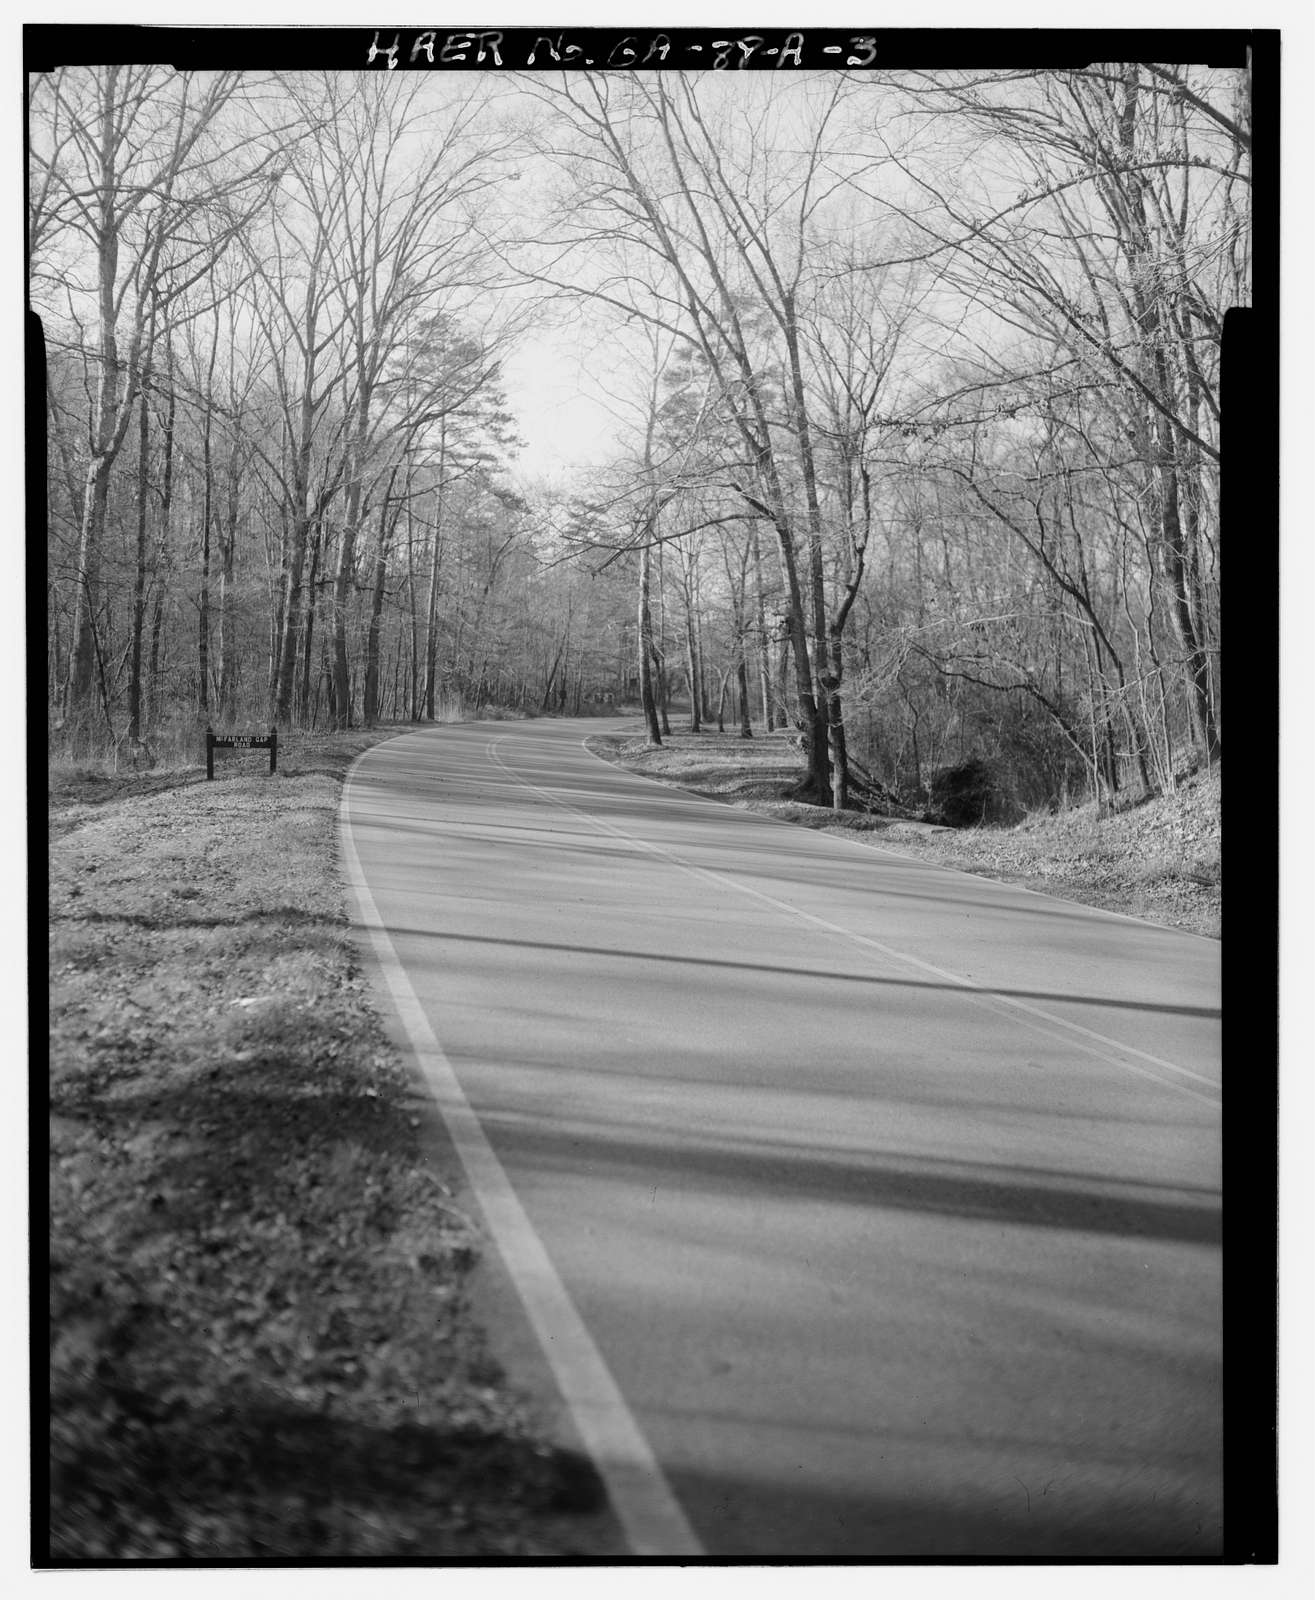 McFarland Gap Road, Culvert, Fort Oglethorpe, Catoosa County, GA